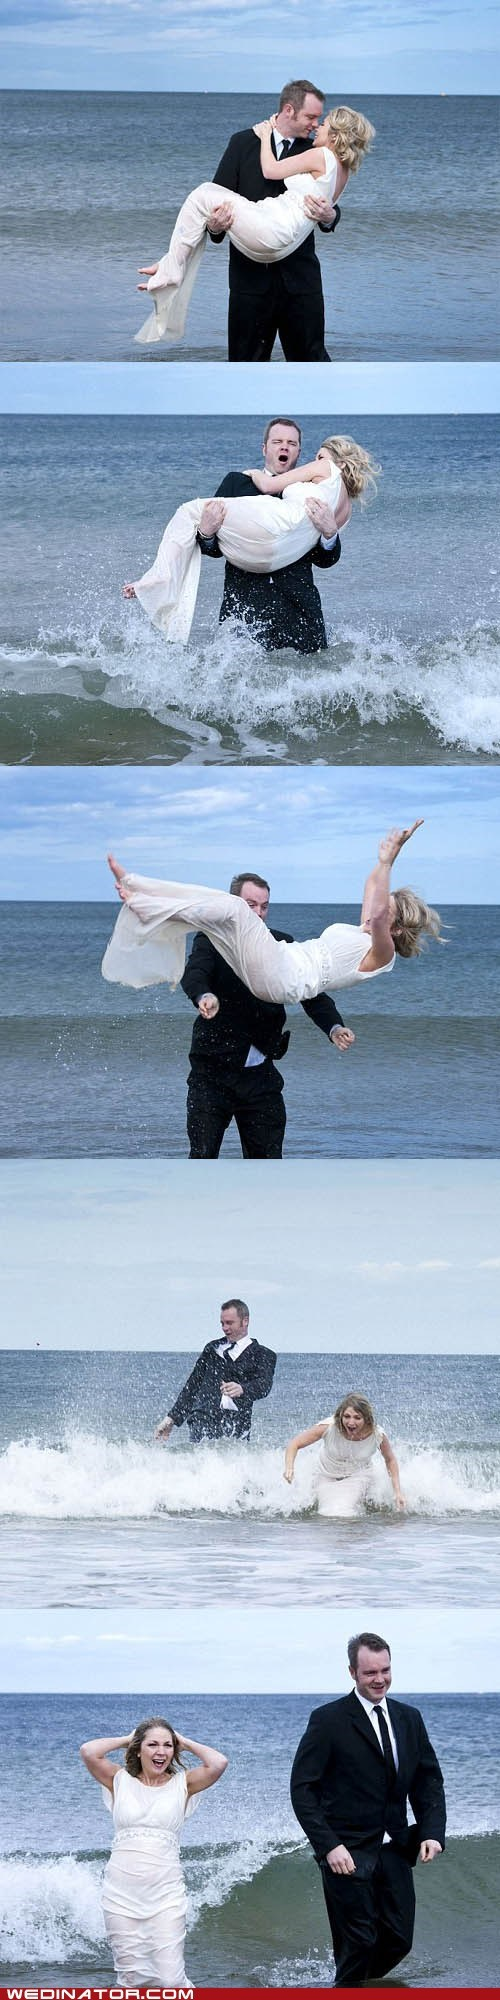 bride drop funny wedding photos groom North Sea ocean underwater - 6478178816